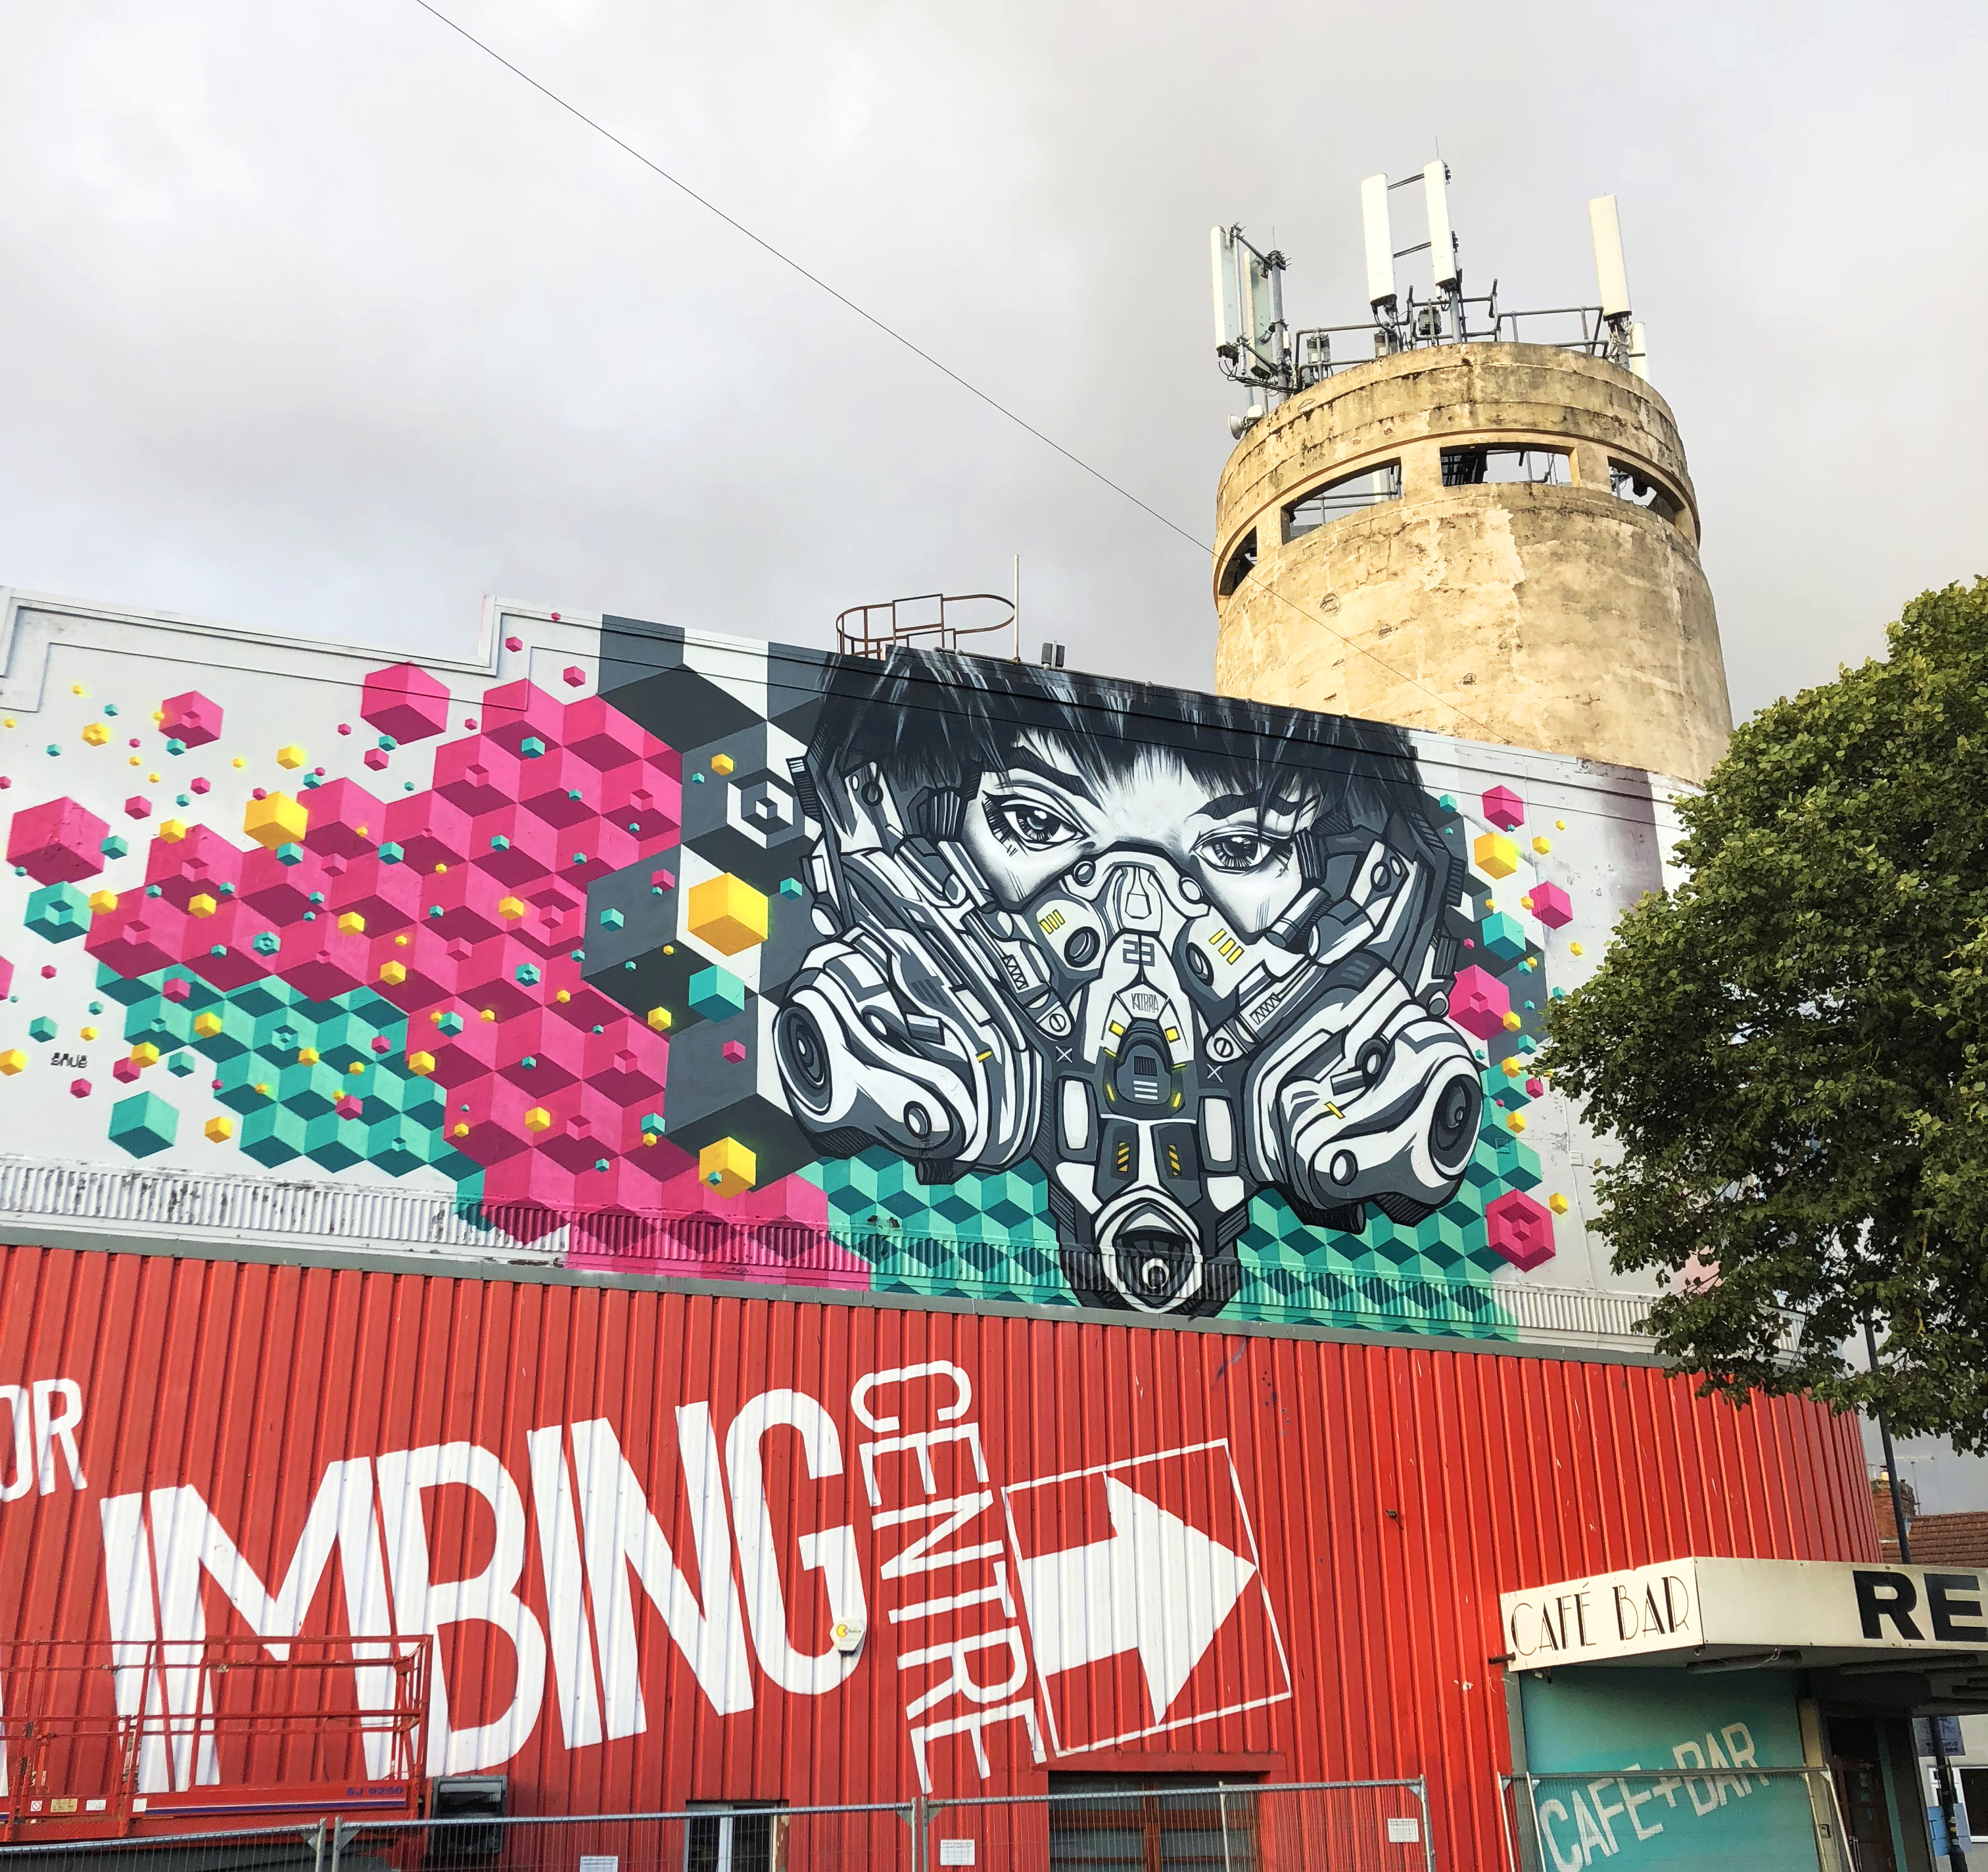 Snub23 Finished Wall at Upfest 2018